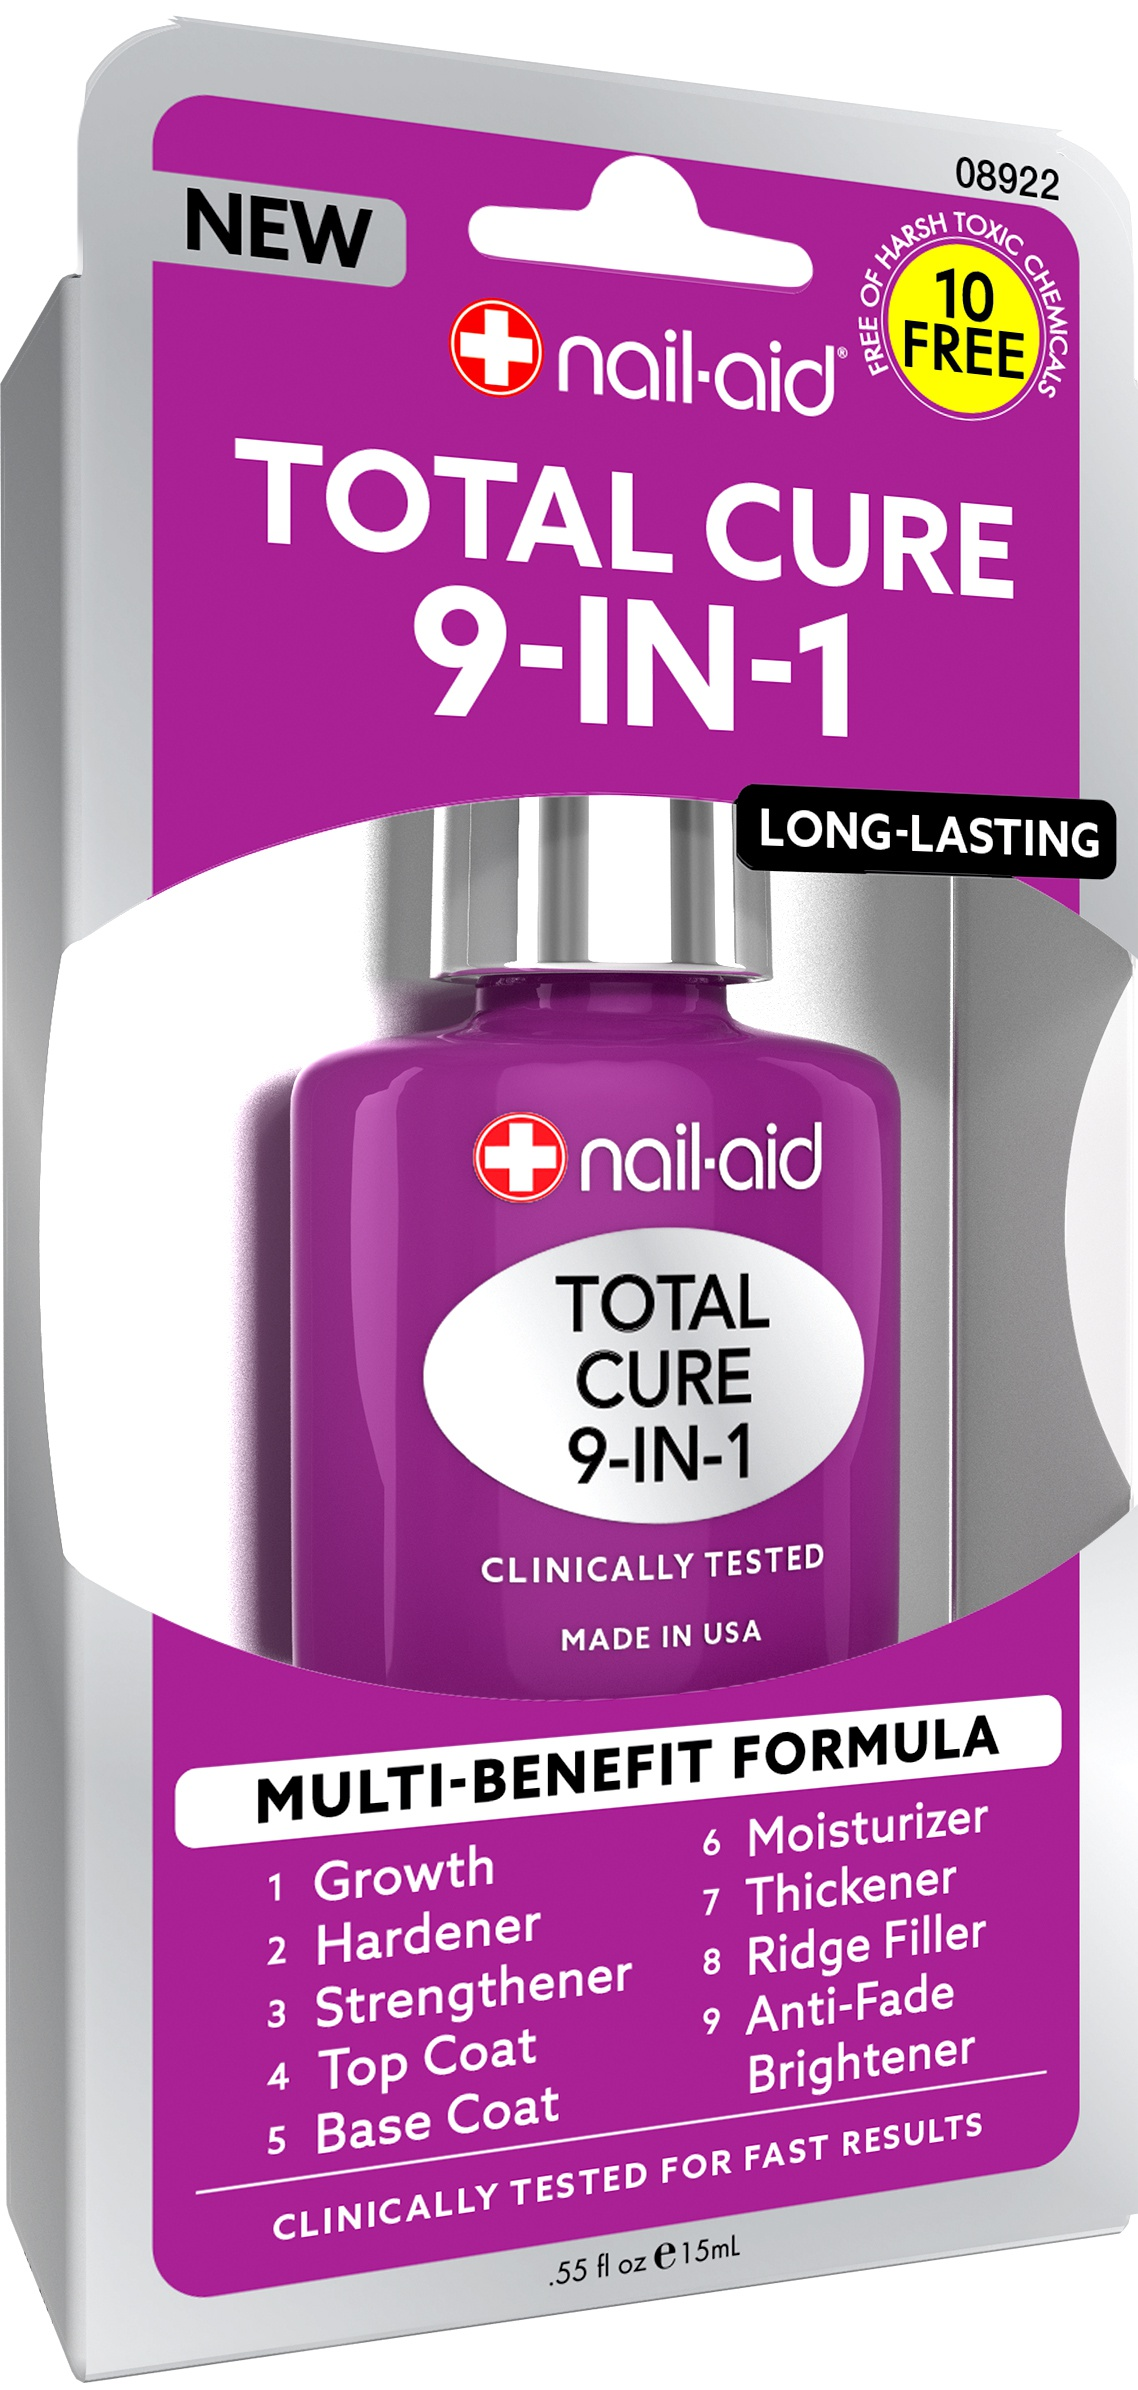 Nail Aid Total Cure 9-In-1